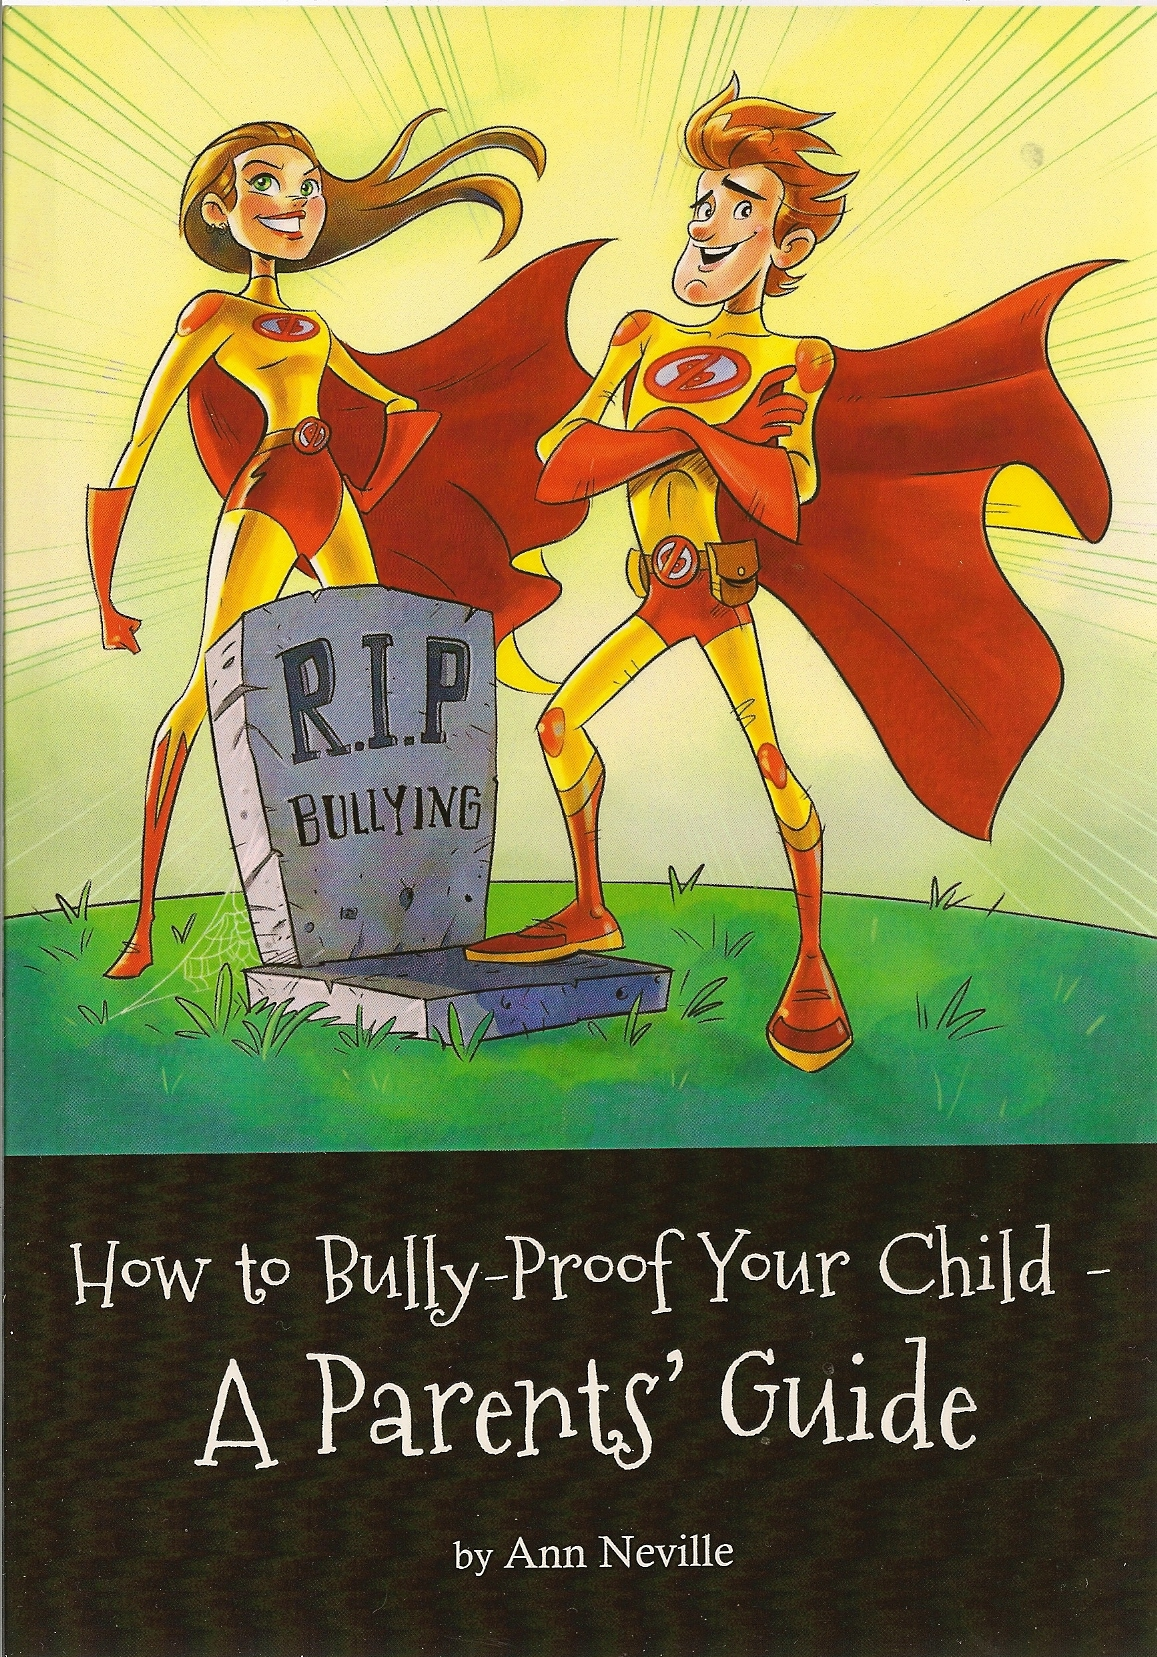 Bullyproof parents